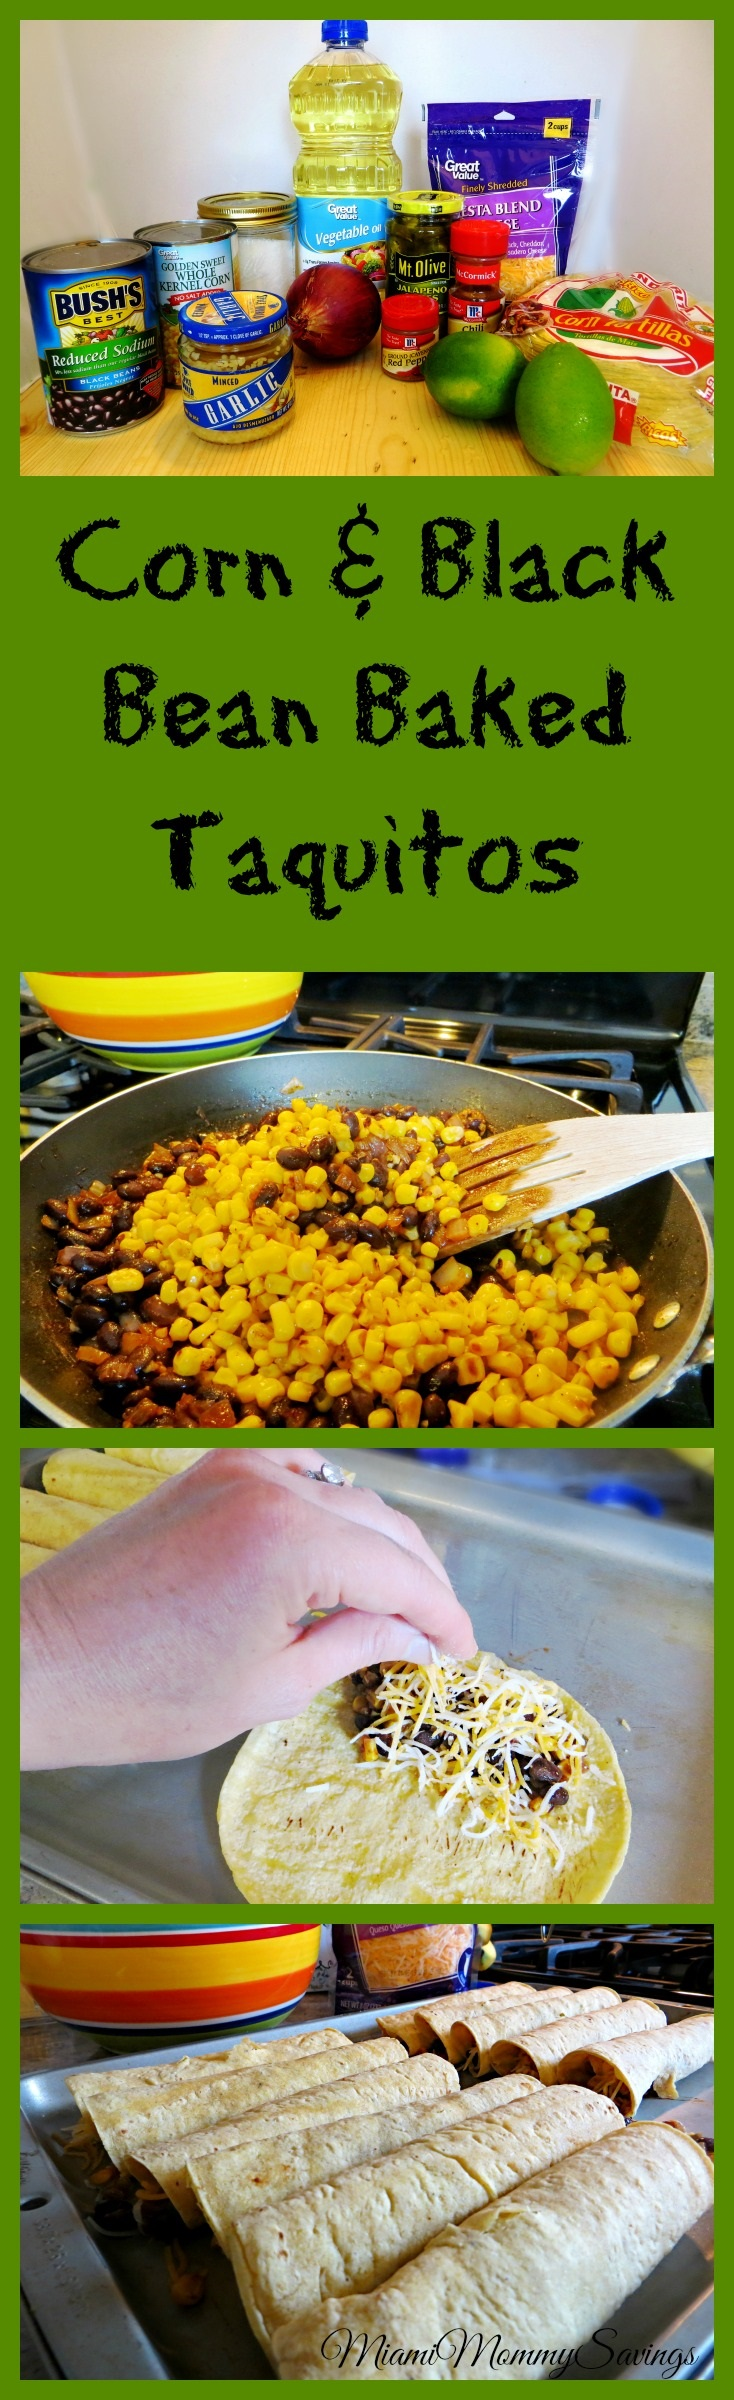 Try this Corn and Black Bean Baked Taquitos recipe your family will ...